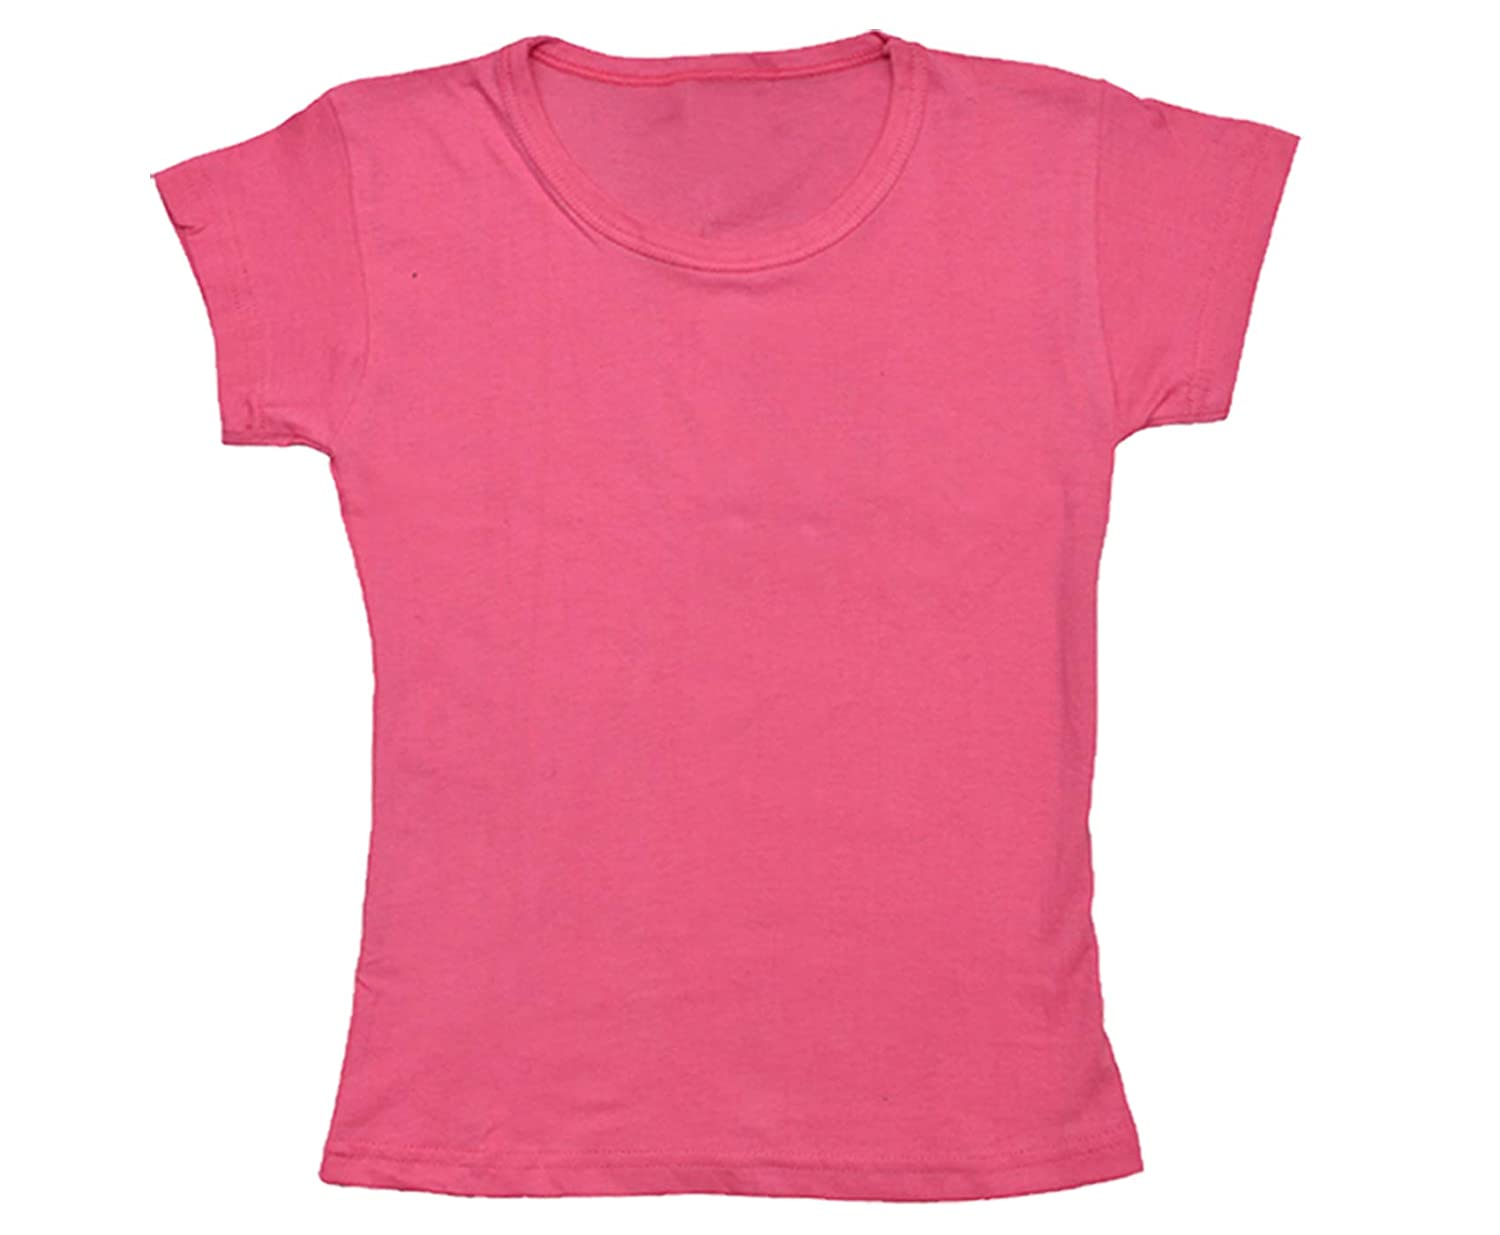 Pack of 4 Indistar Girls Cotton Half Sleeves Solid T-Shirts